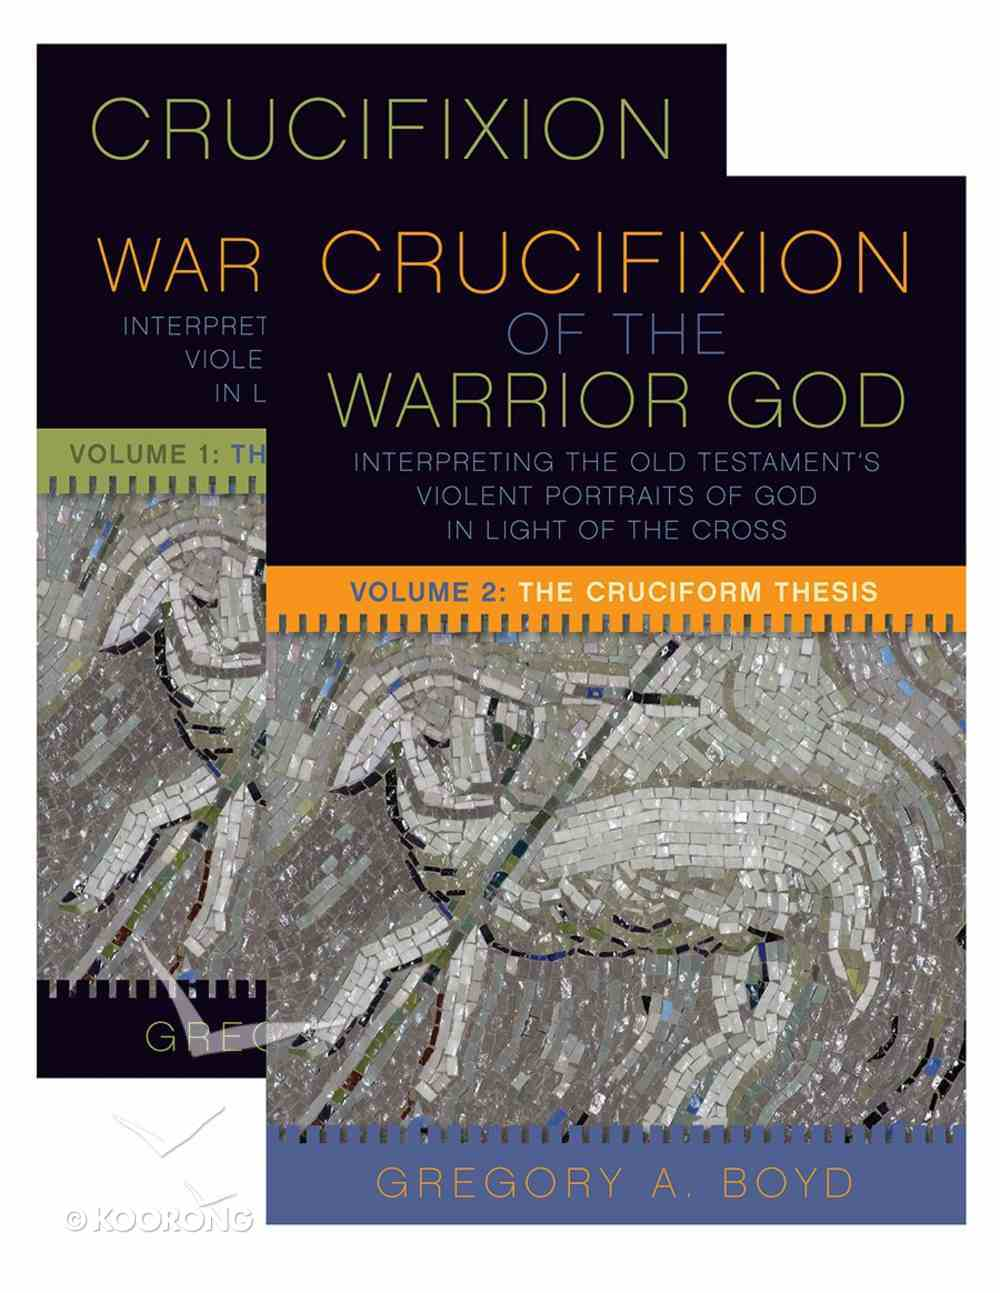 The Crucifixion of the Warrior God (Volumes 1 & 2) Paperback